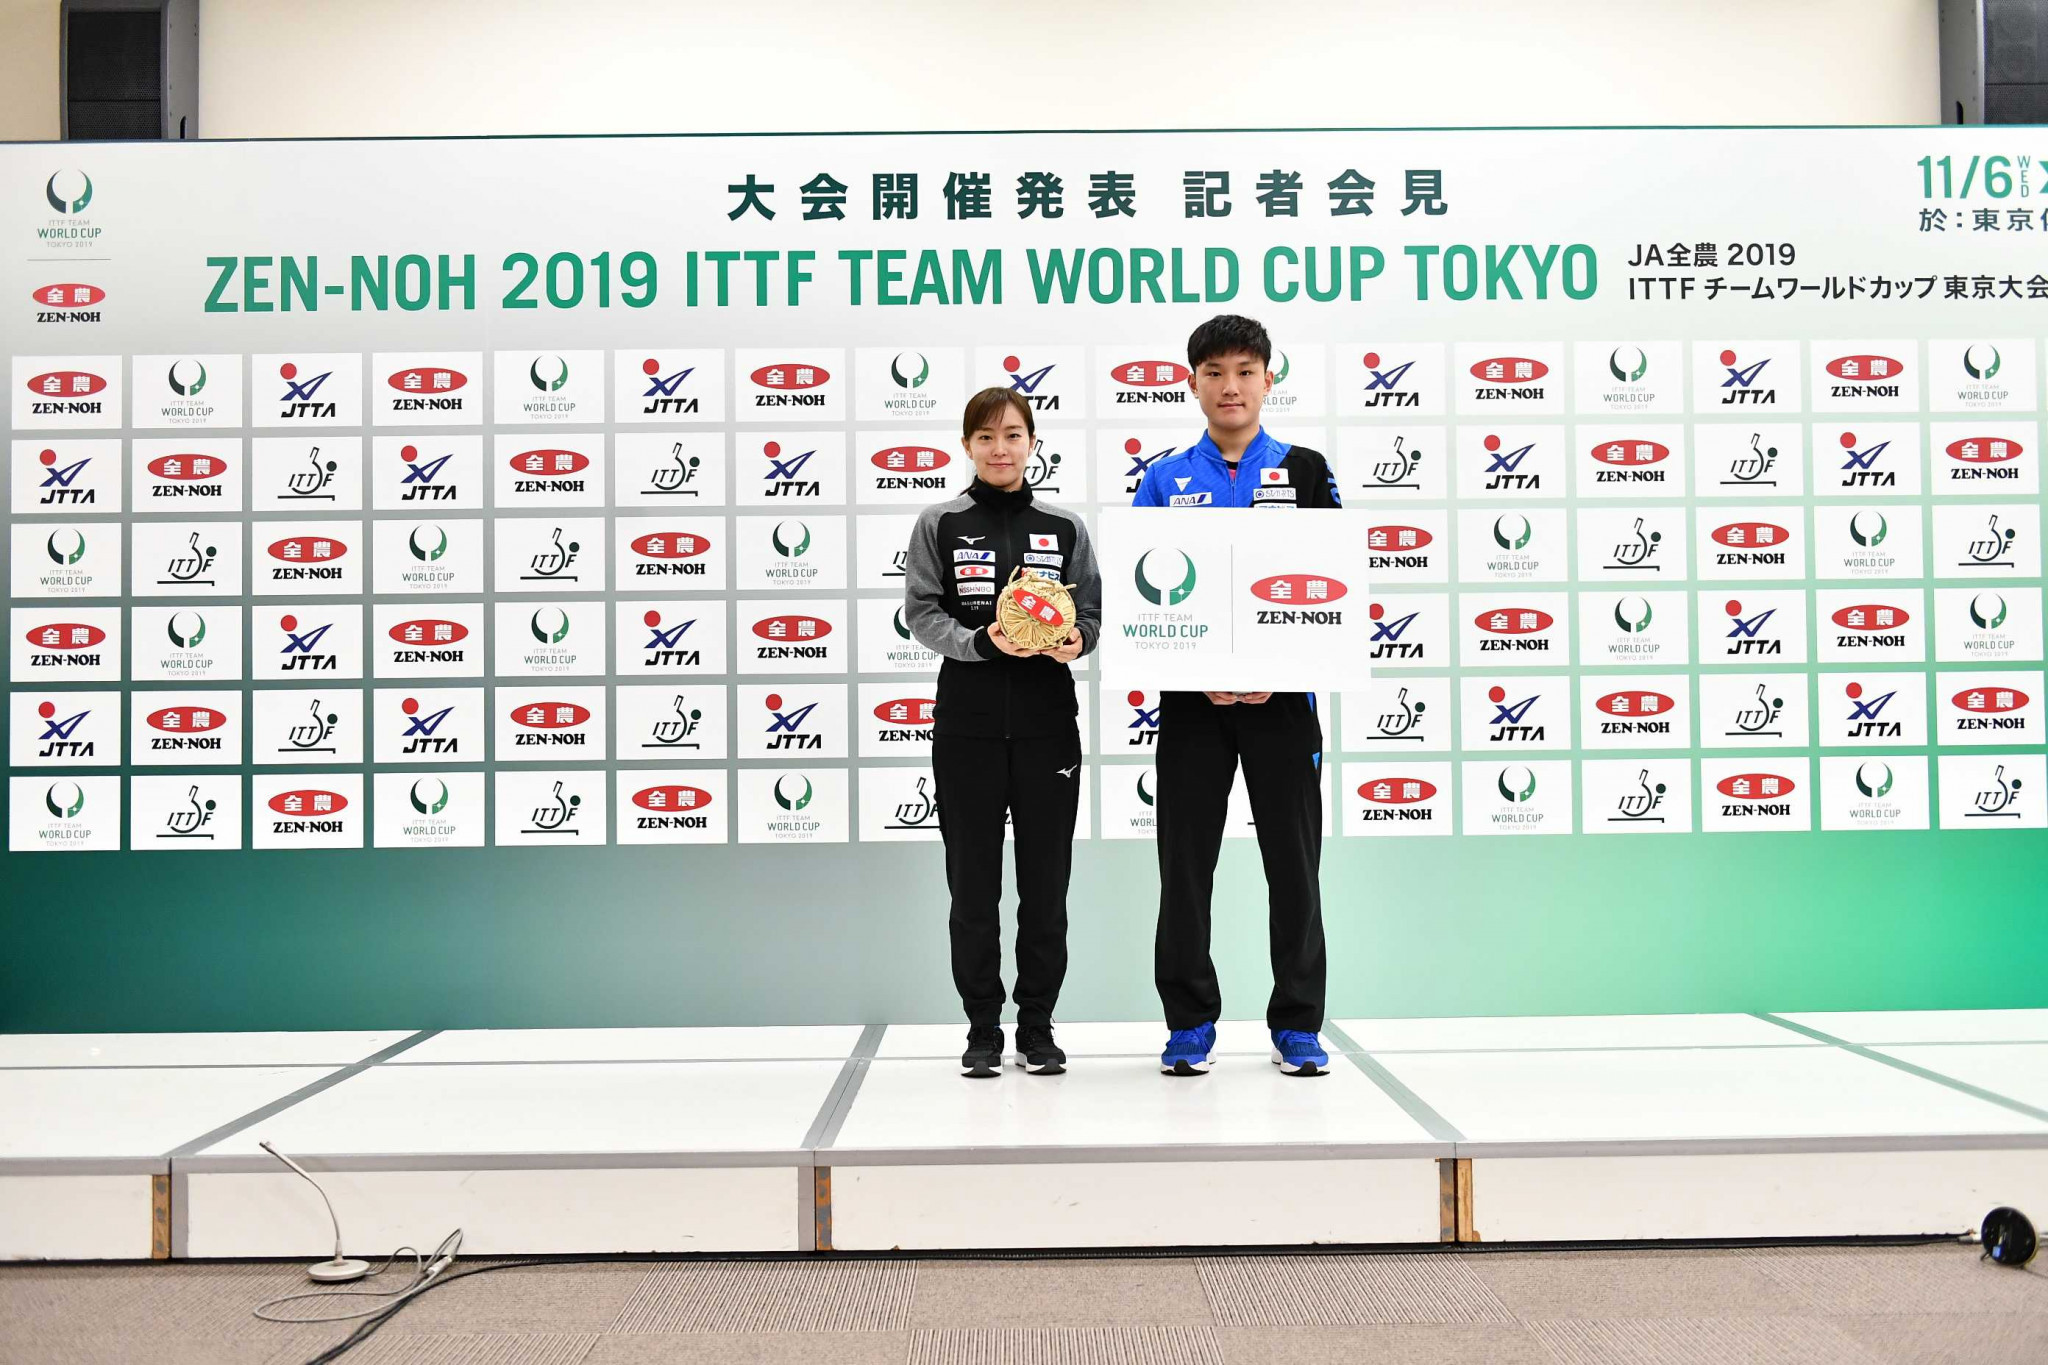 Tokyo is hosting this year's ITTF Team World Cup ©ITTF